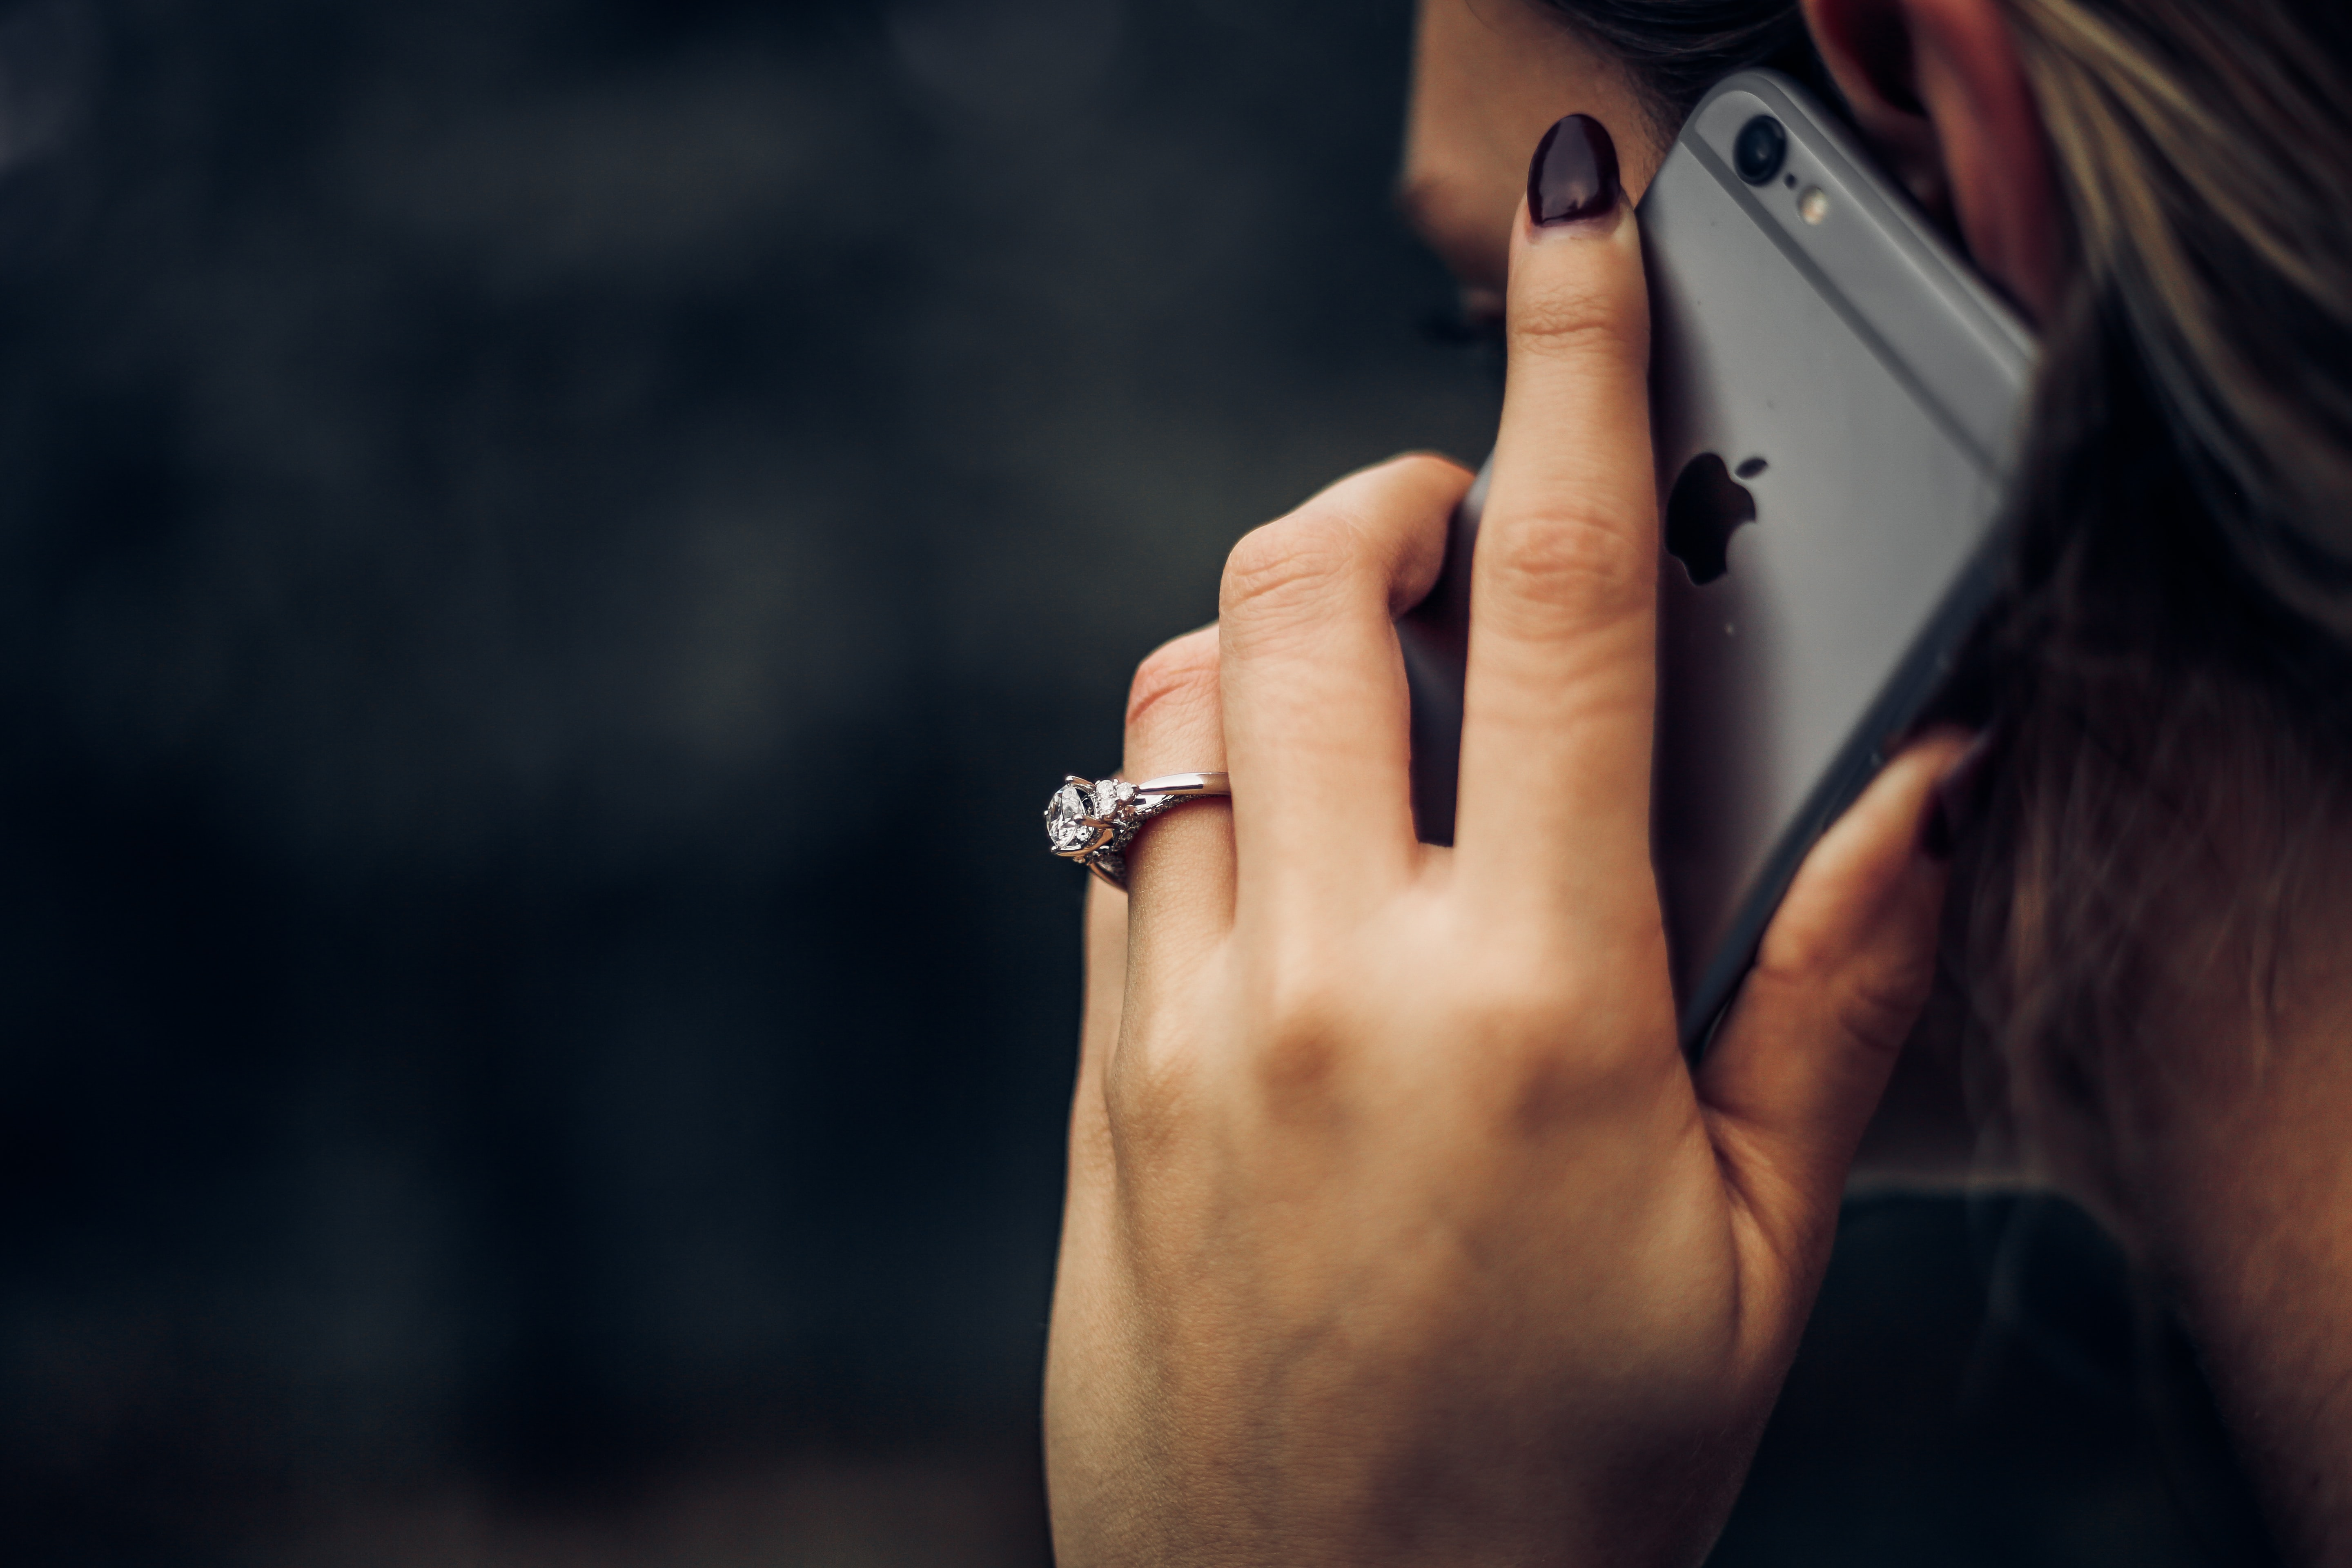 Woman wearing a diamond wedding ring talking on an iPhone